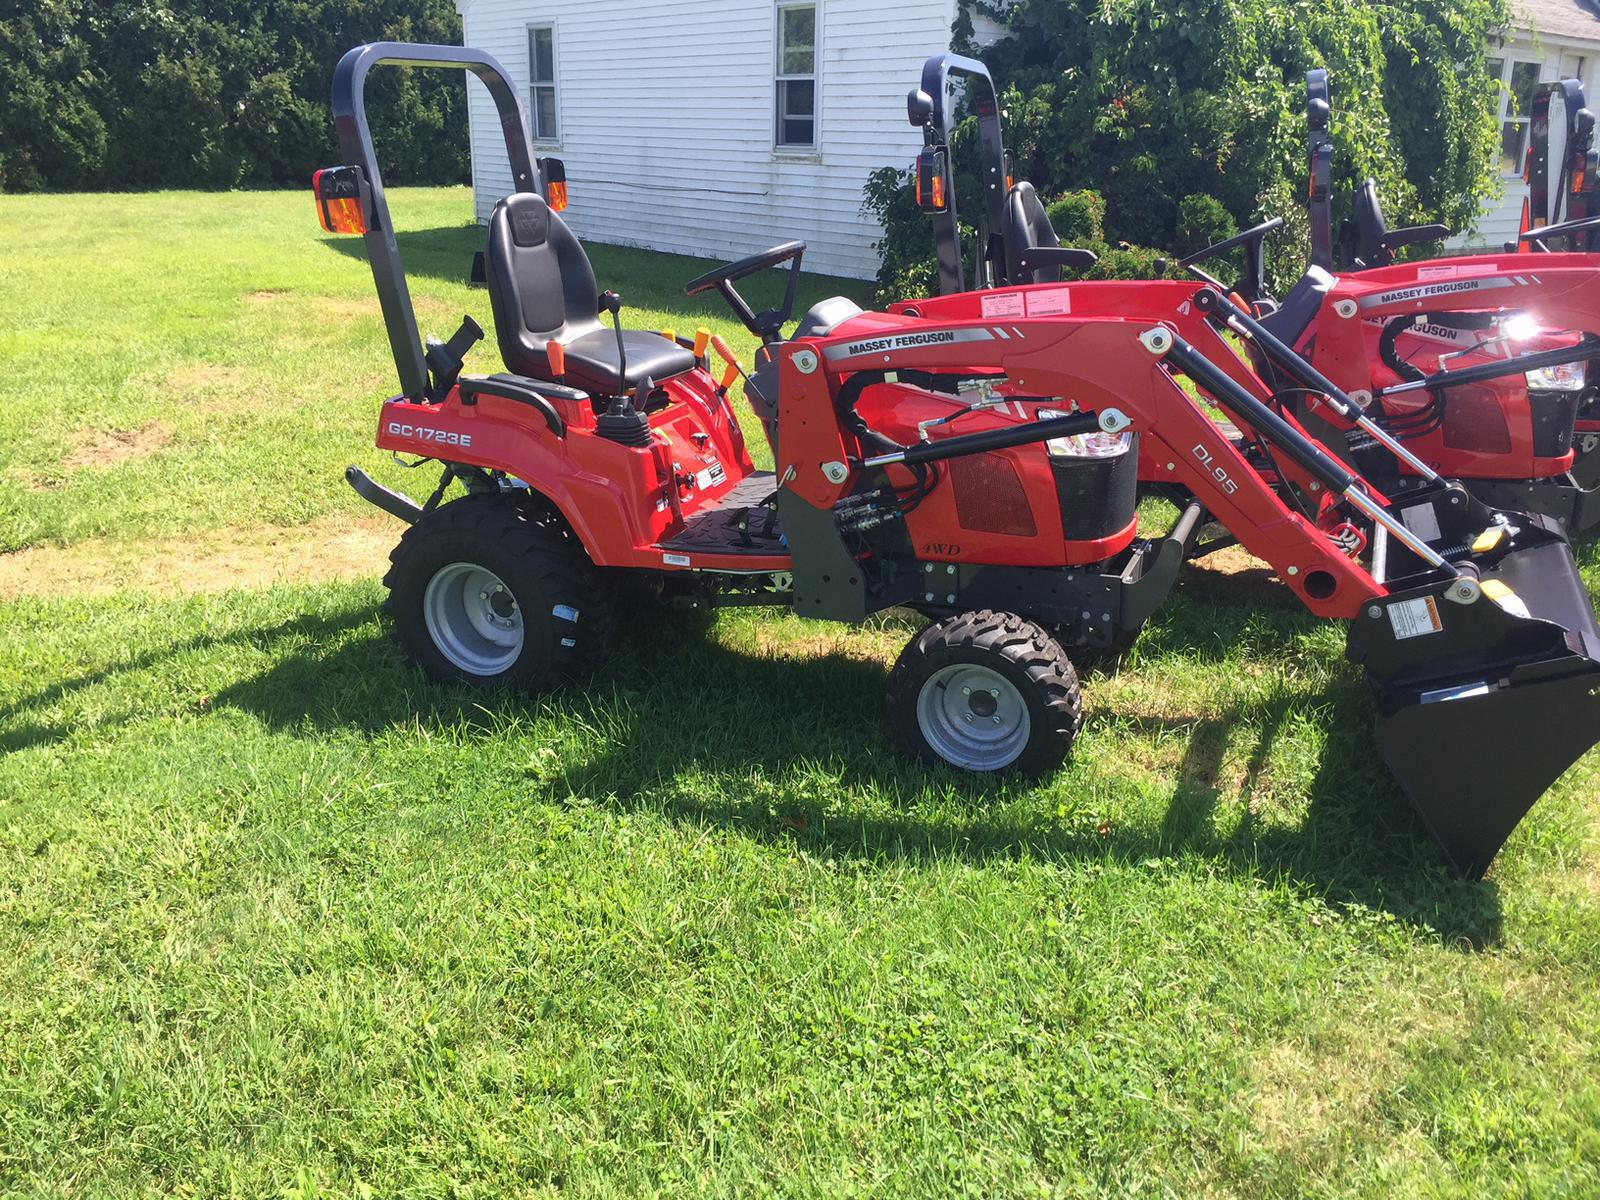 Inventory from Massey Ferguson and Woods Big Boys Toys LLC